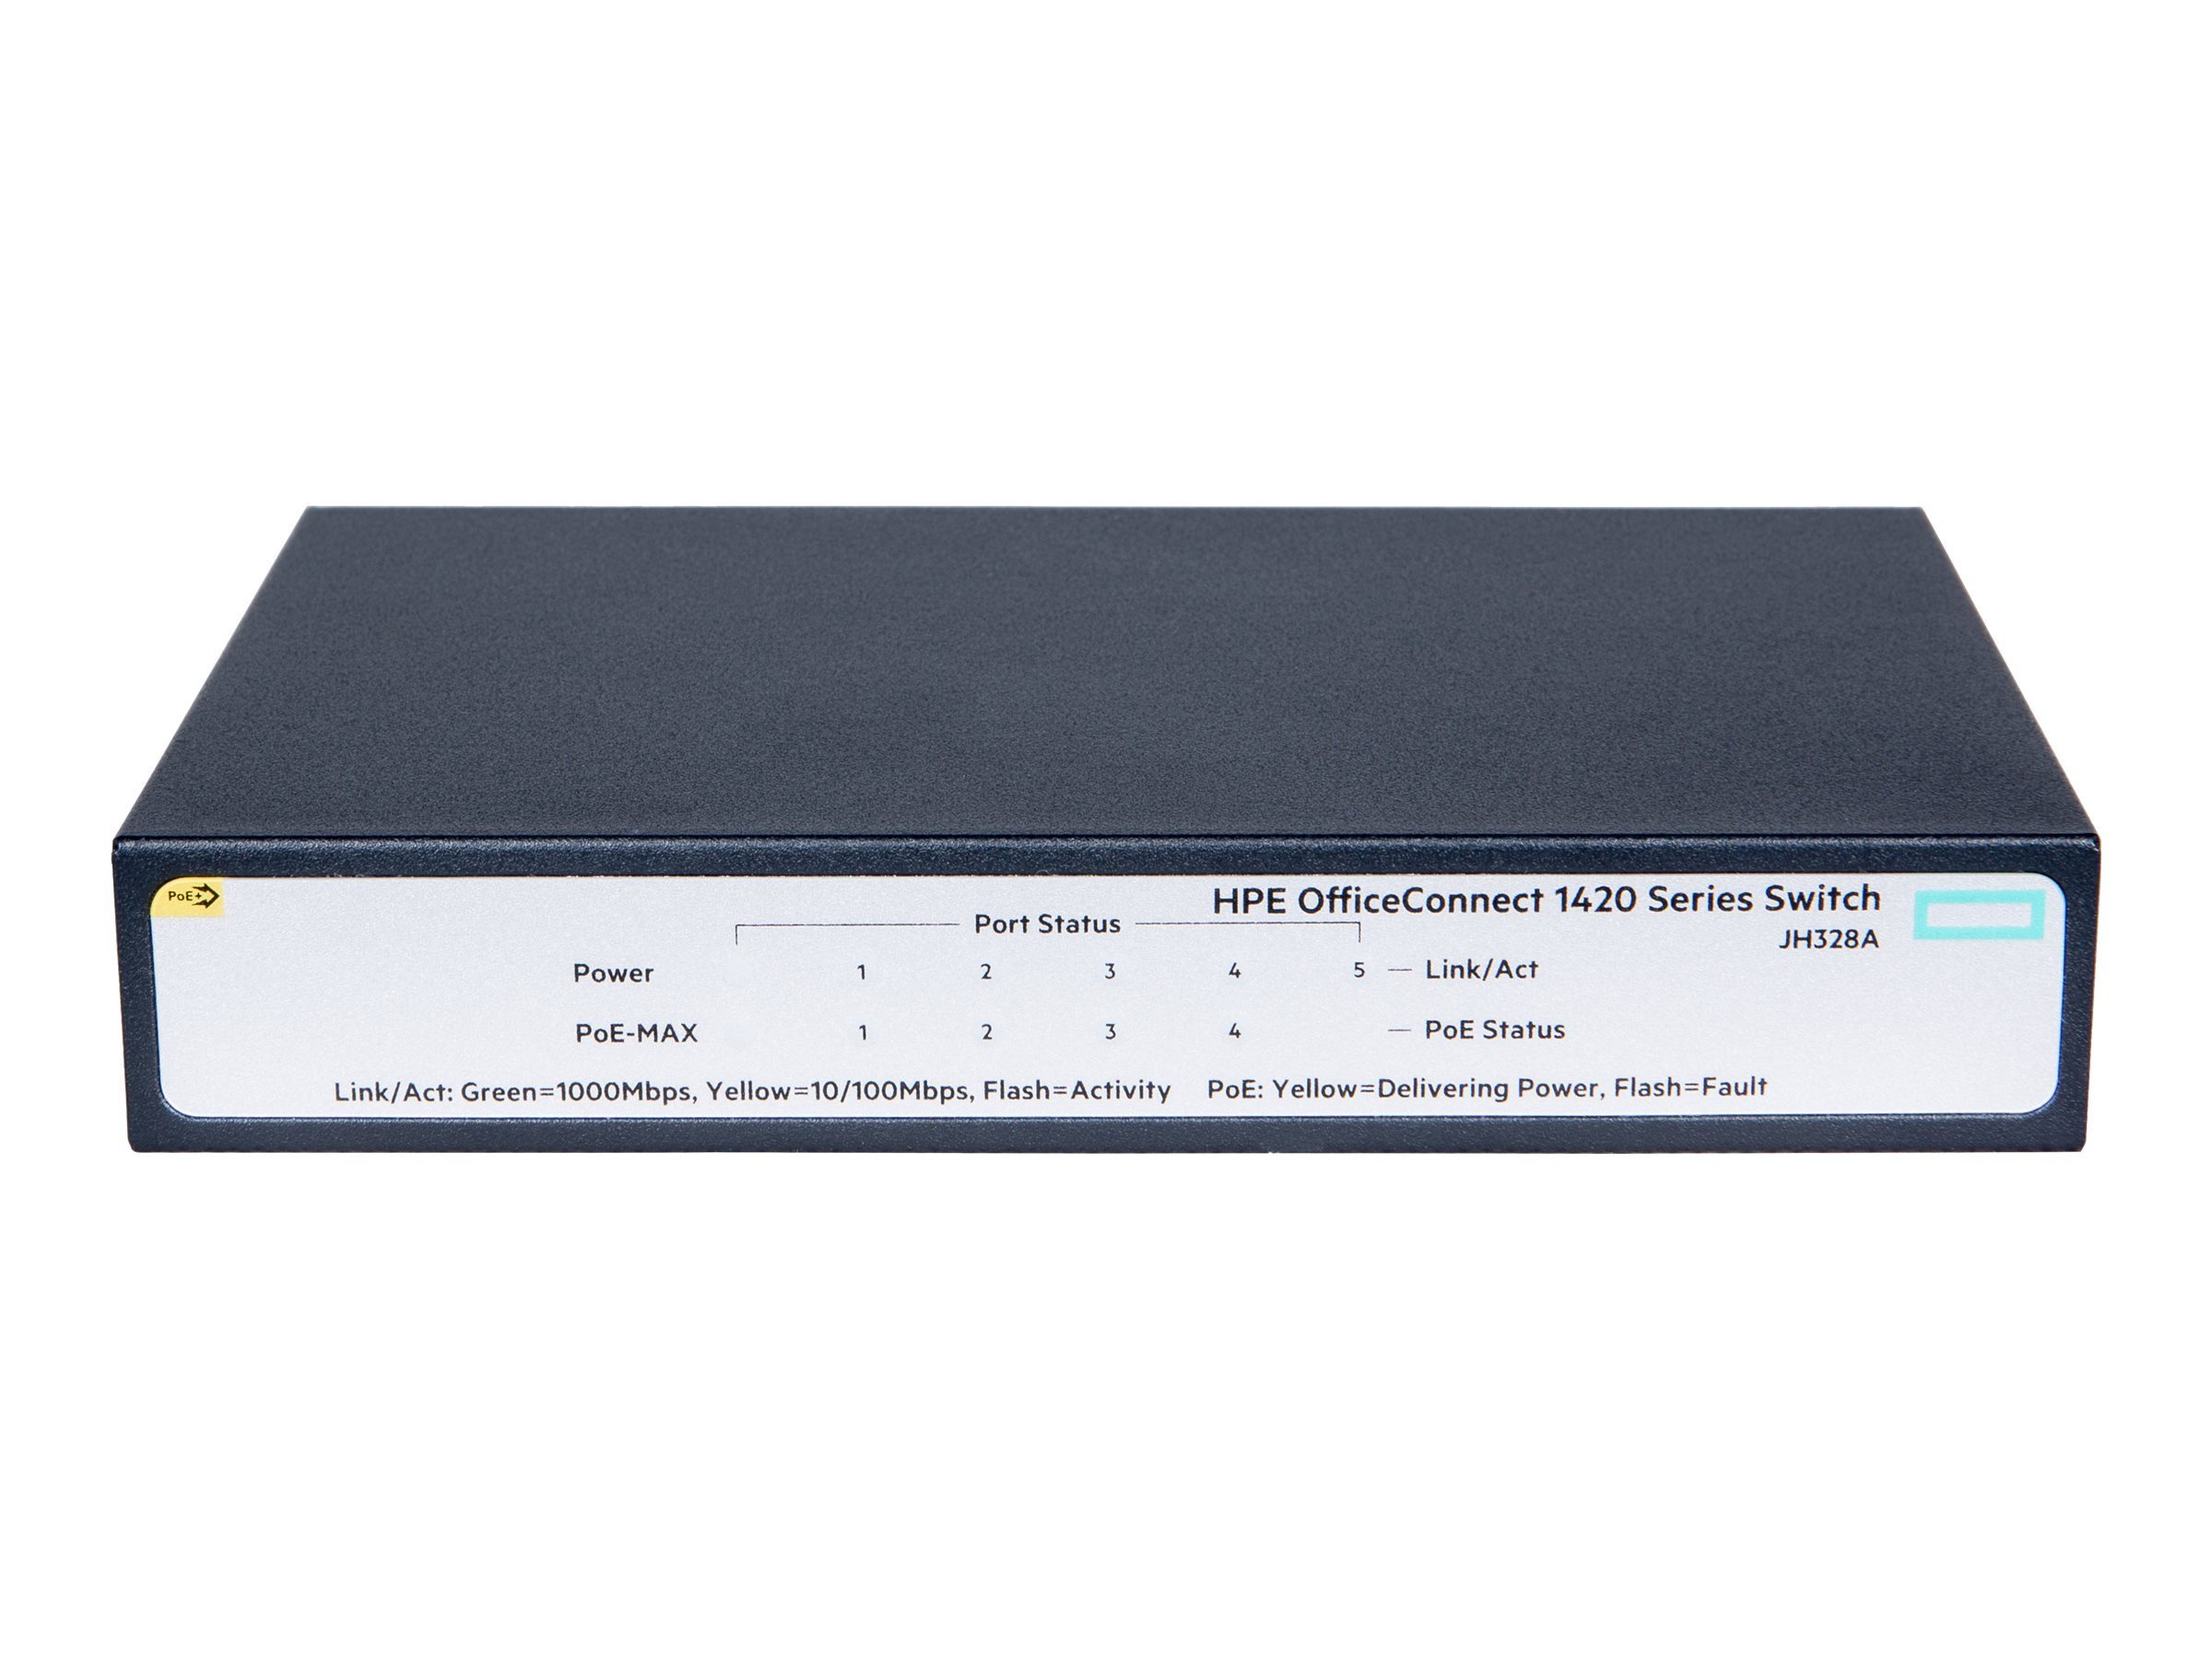 HPE OfficeConnect 1420 5-Port GE PoE+ (32W) Unmanaged Switch, JH328A